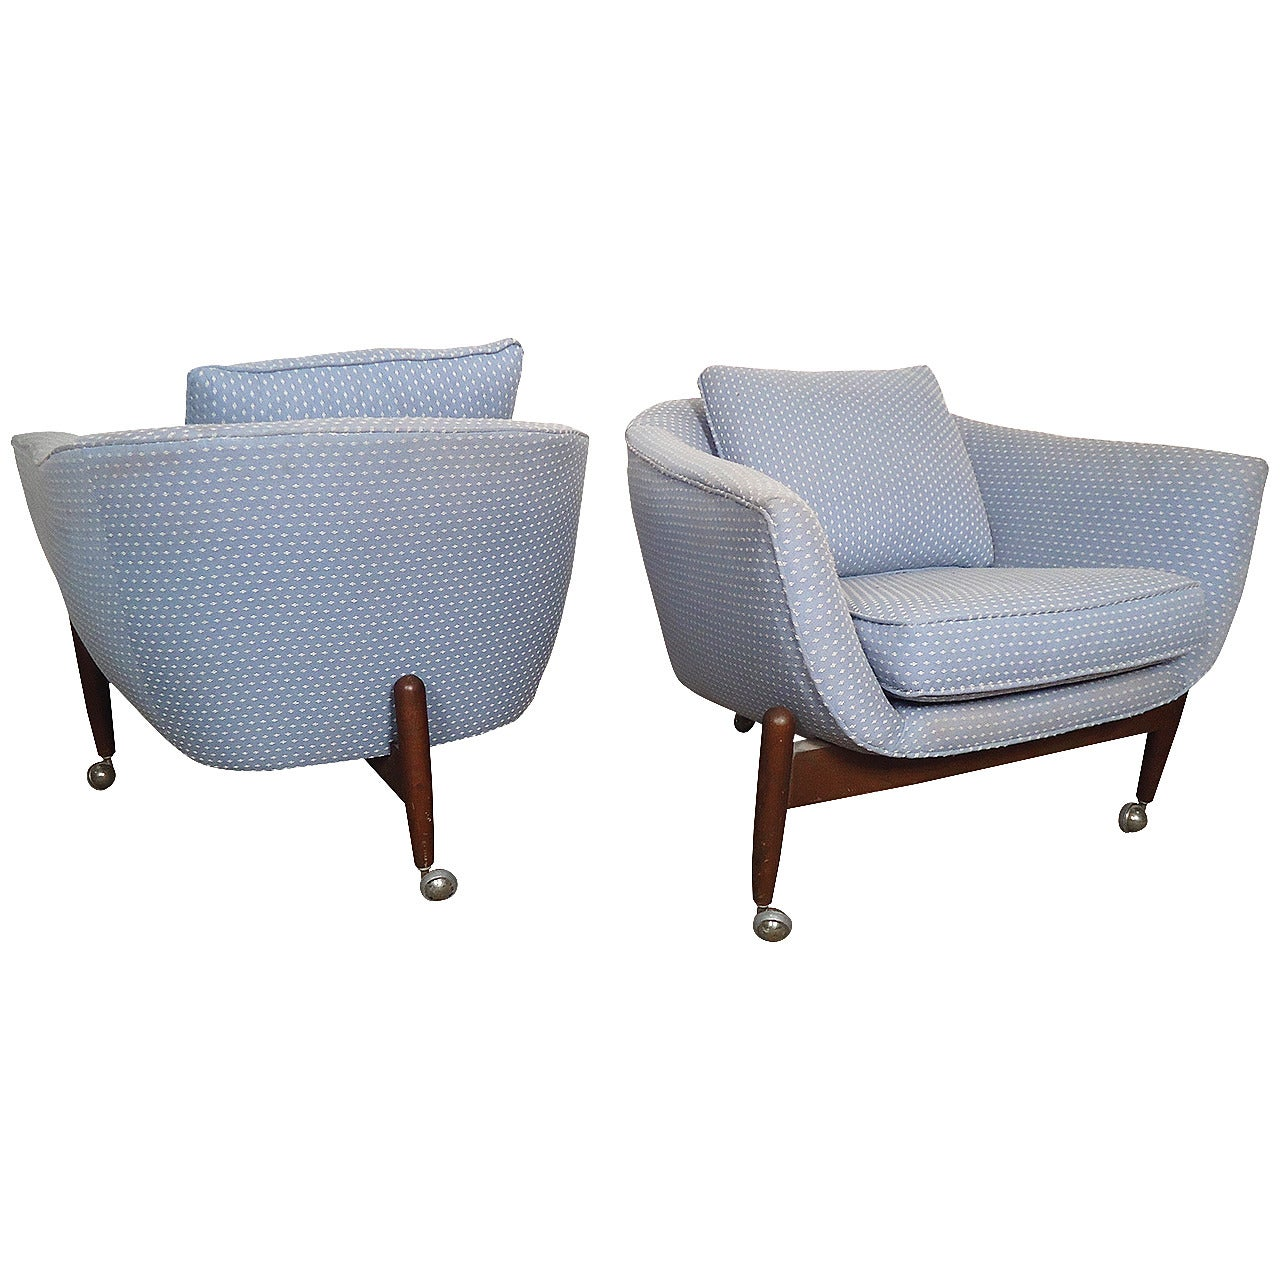 Pair of Mid-Century Modern Adrian Pearsall Barrel Back Armchairs